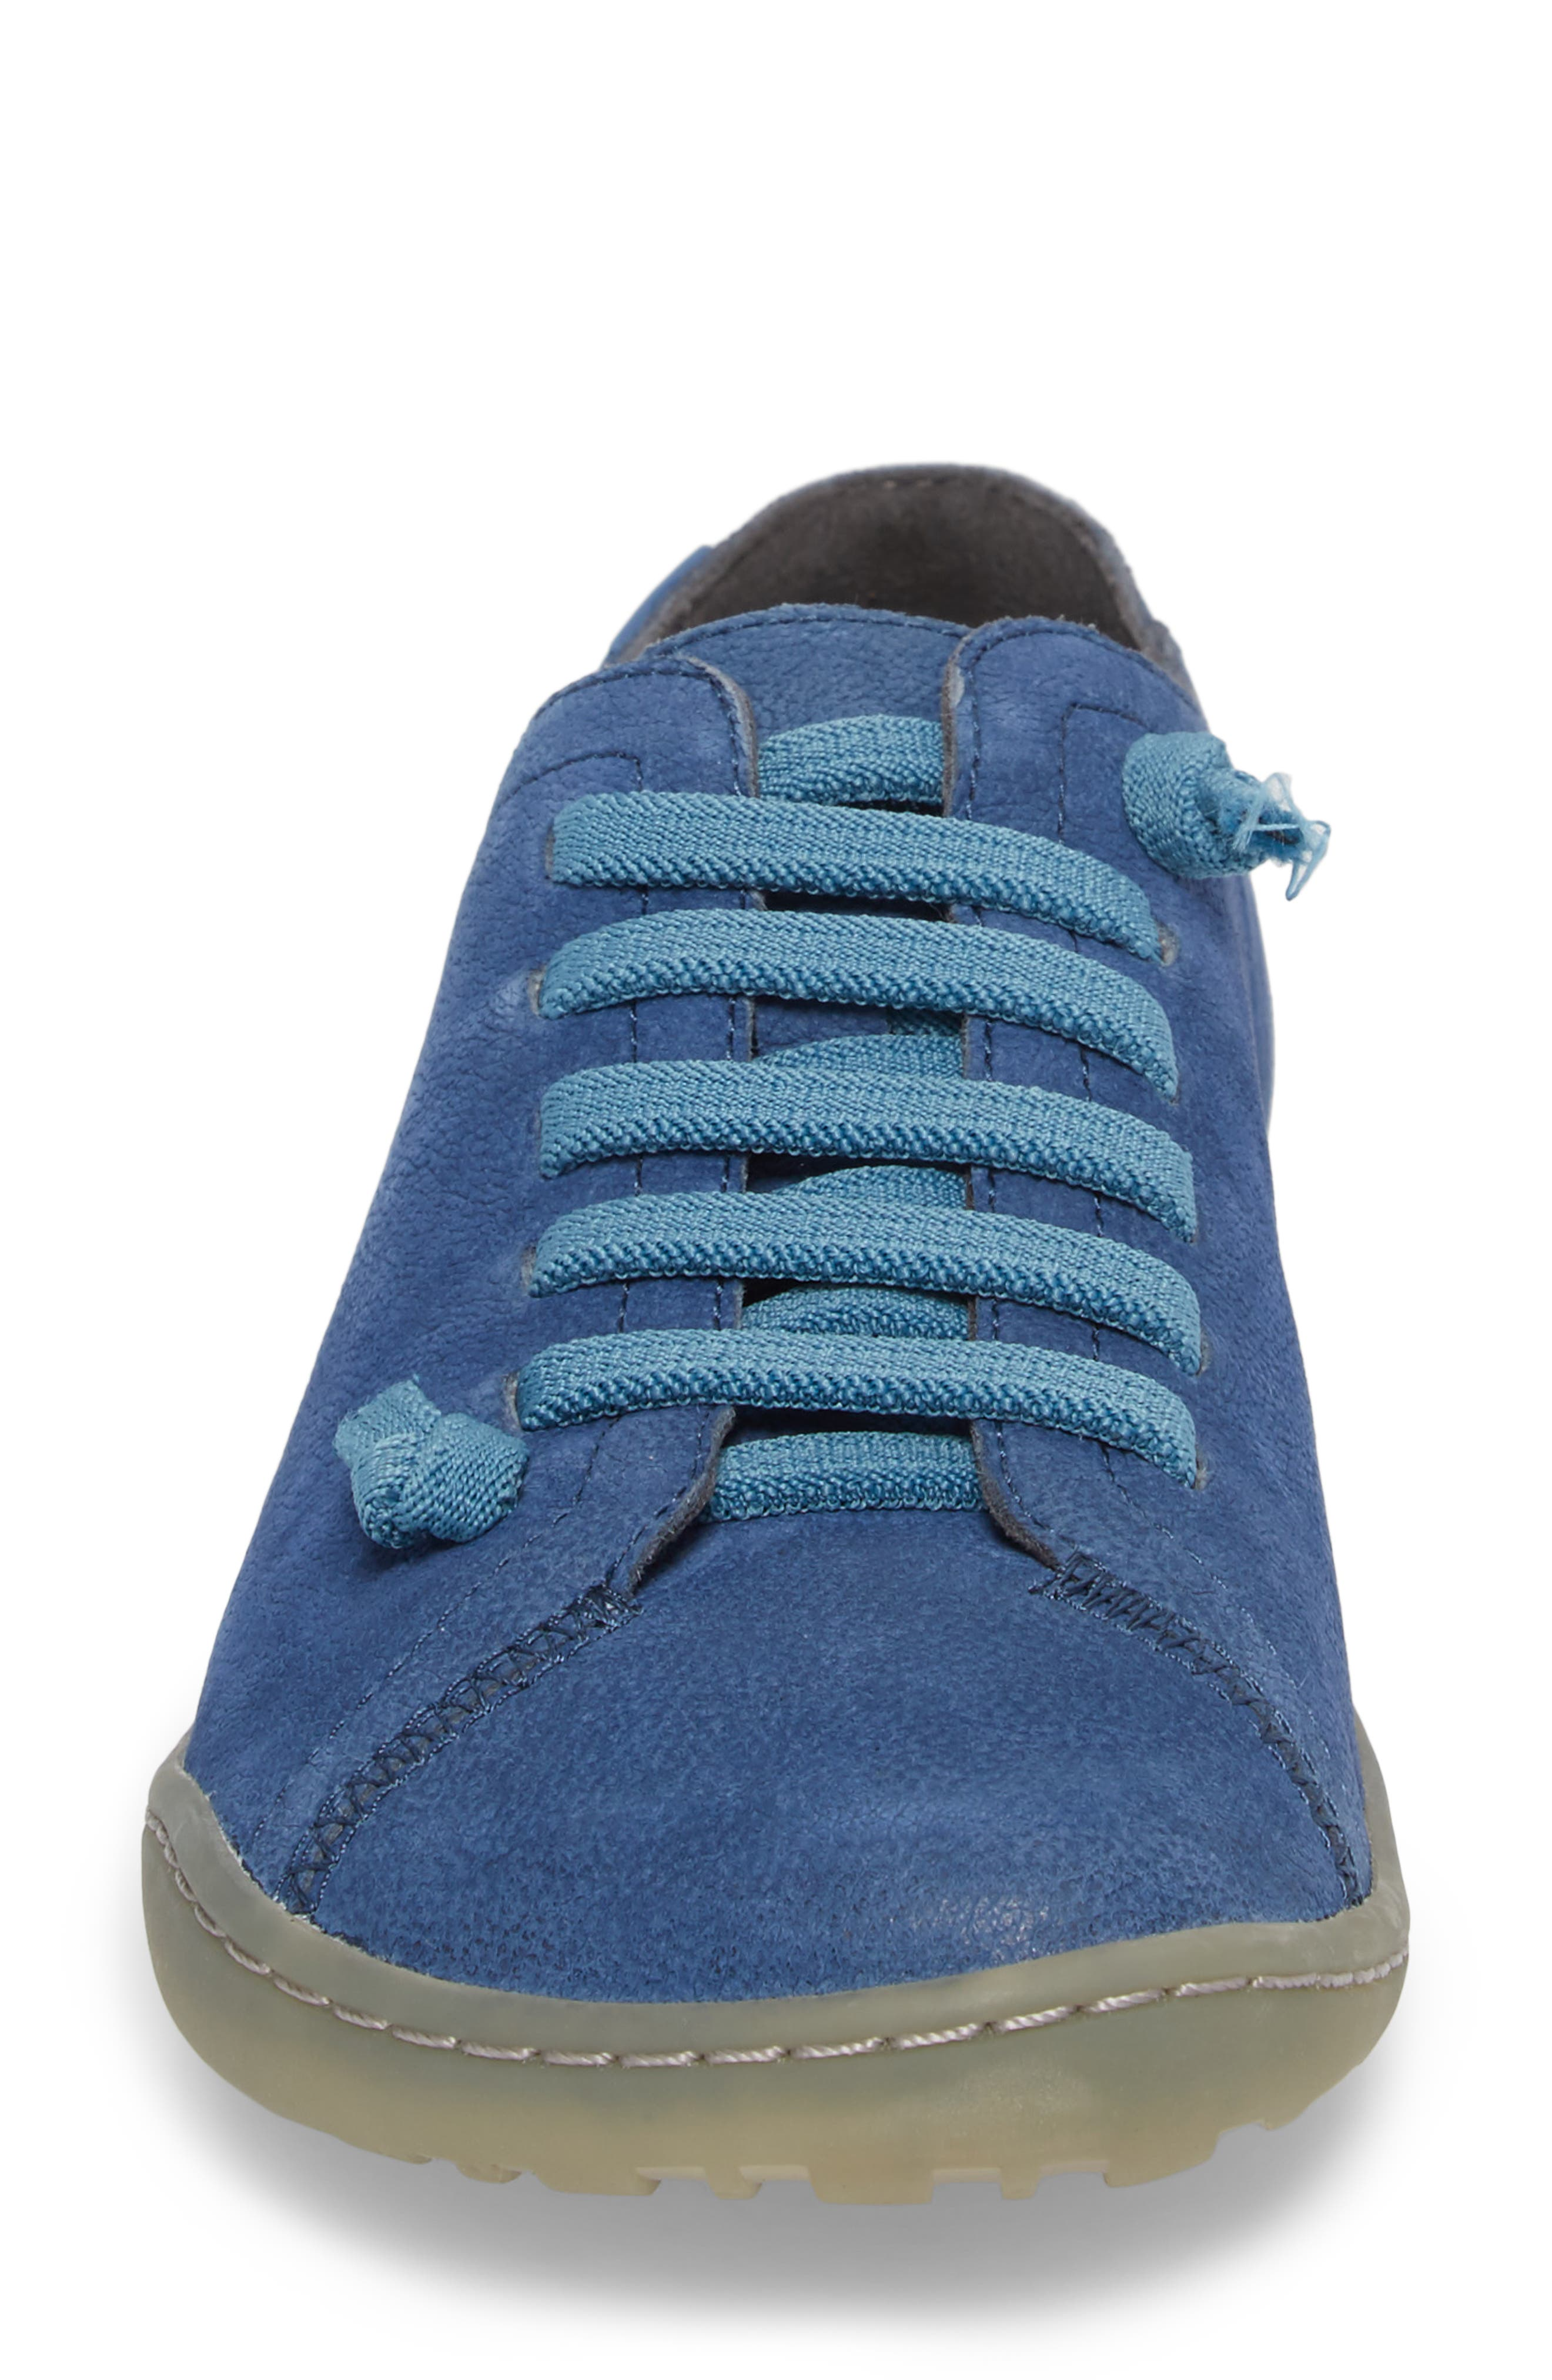 'Peu Cami' Leather Sneaker,                             Alternate thumbnail 4, color,                             Medium Blue Suede